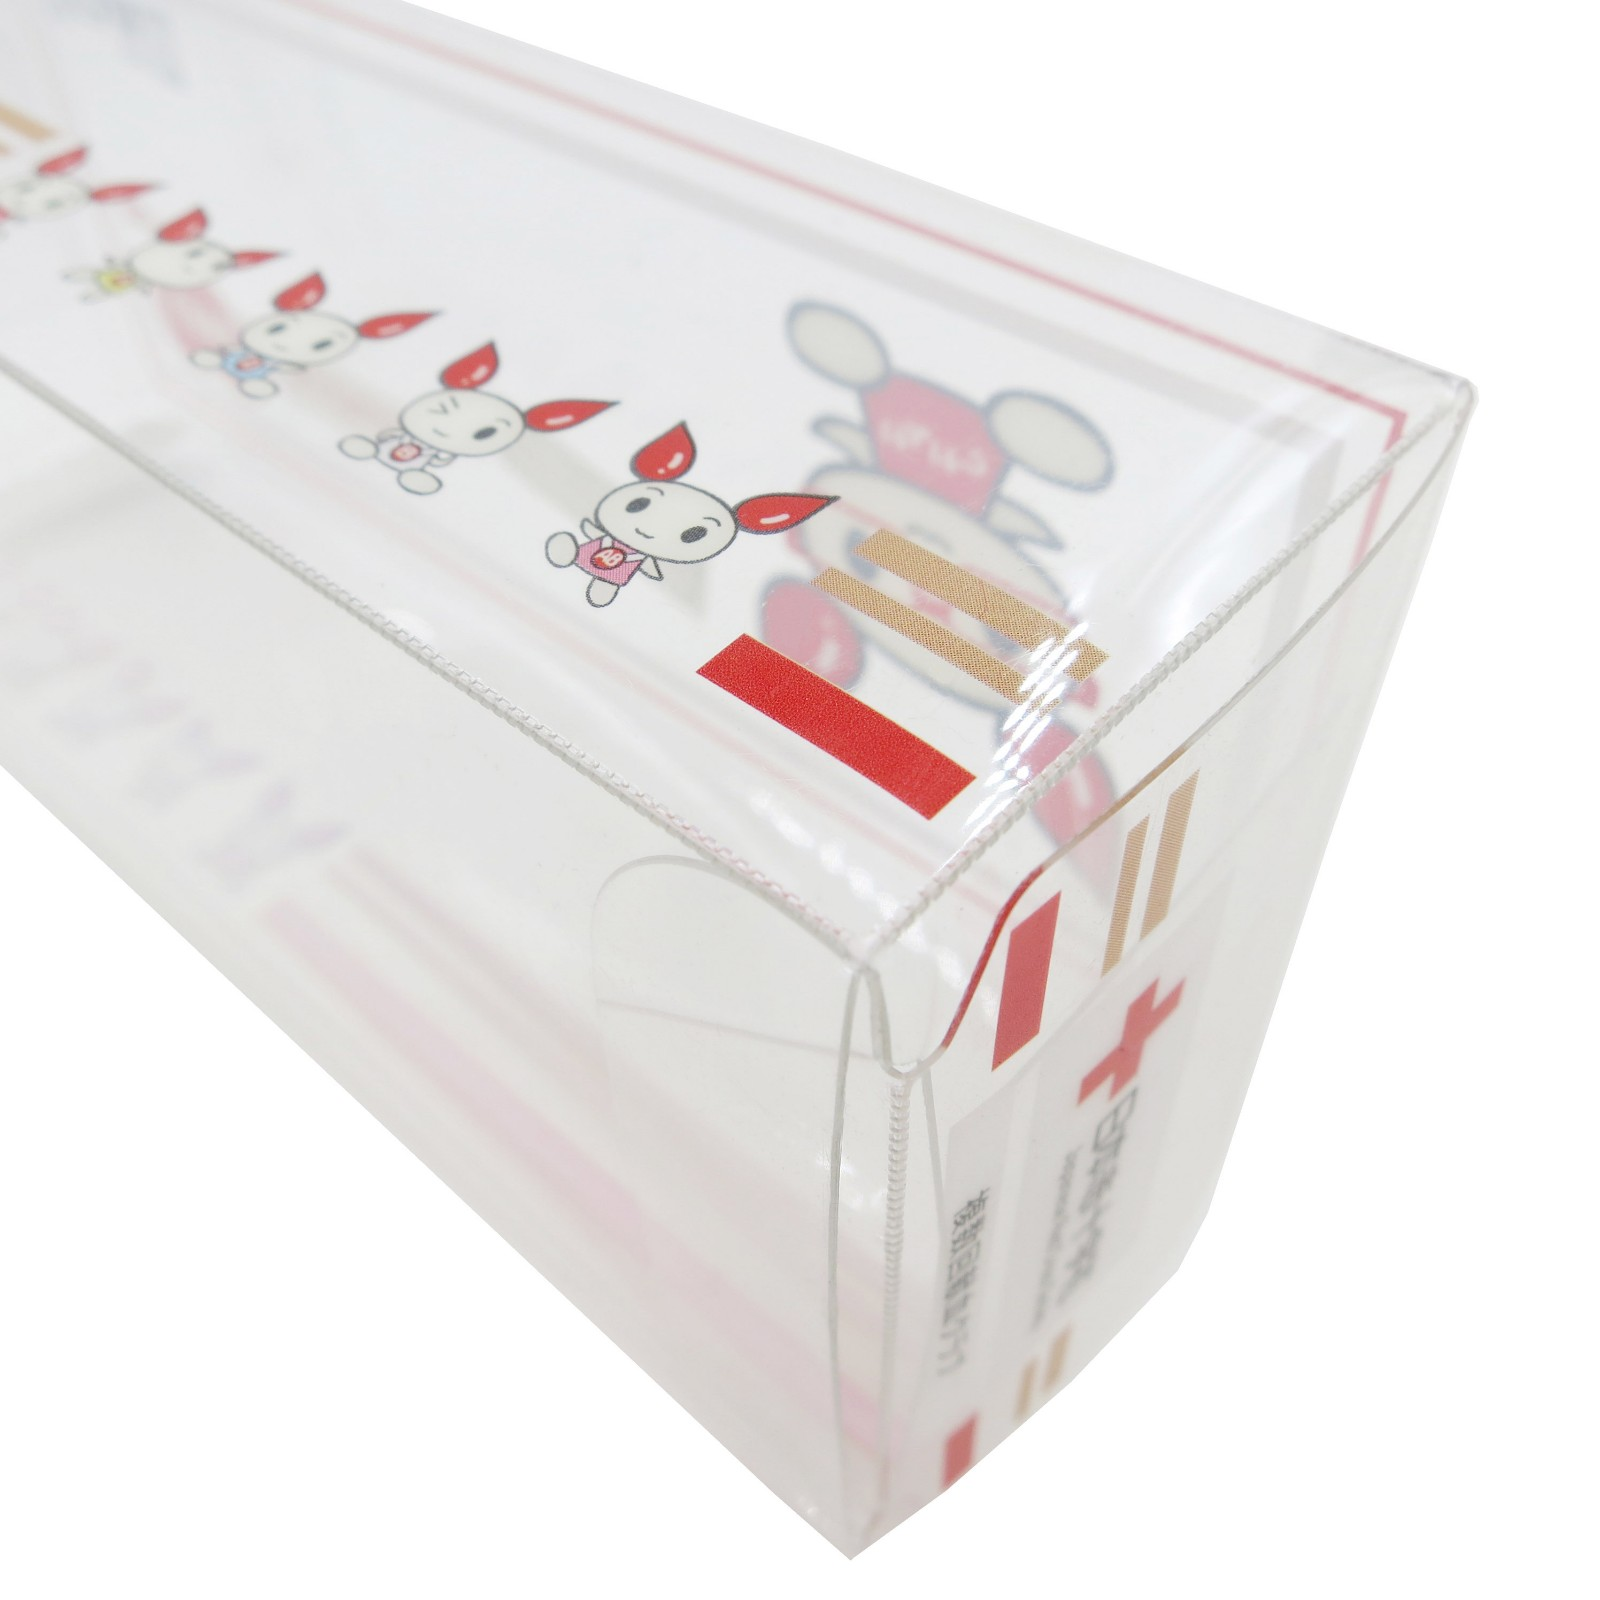 Yijianxing Plastic Products without plastic box packaging widely-use for gifts-7